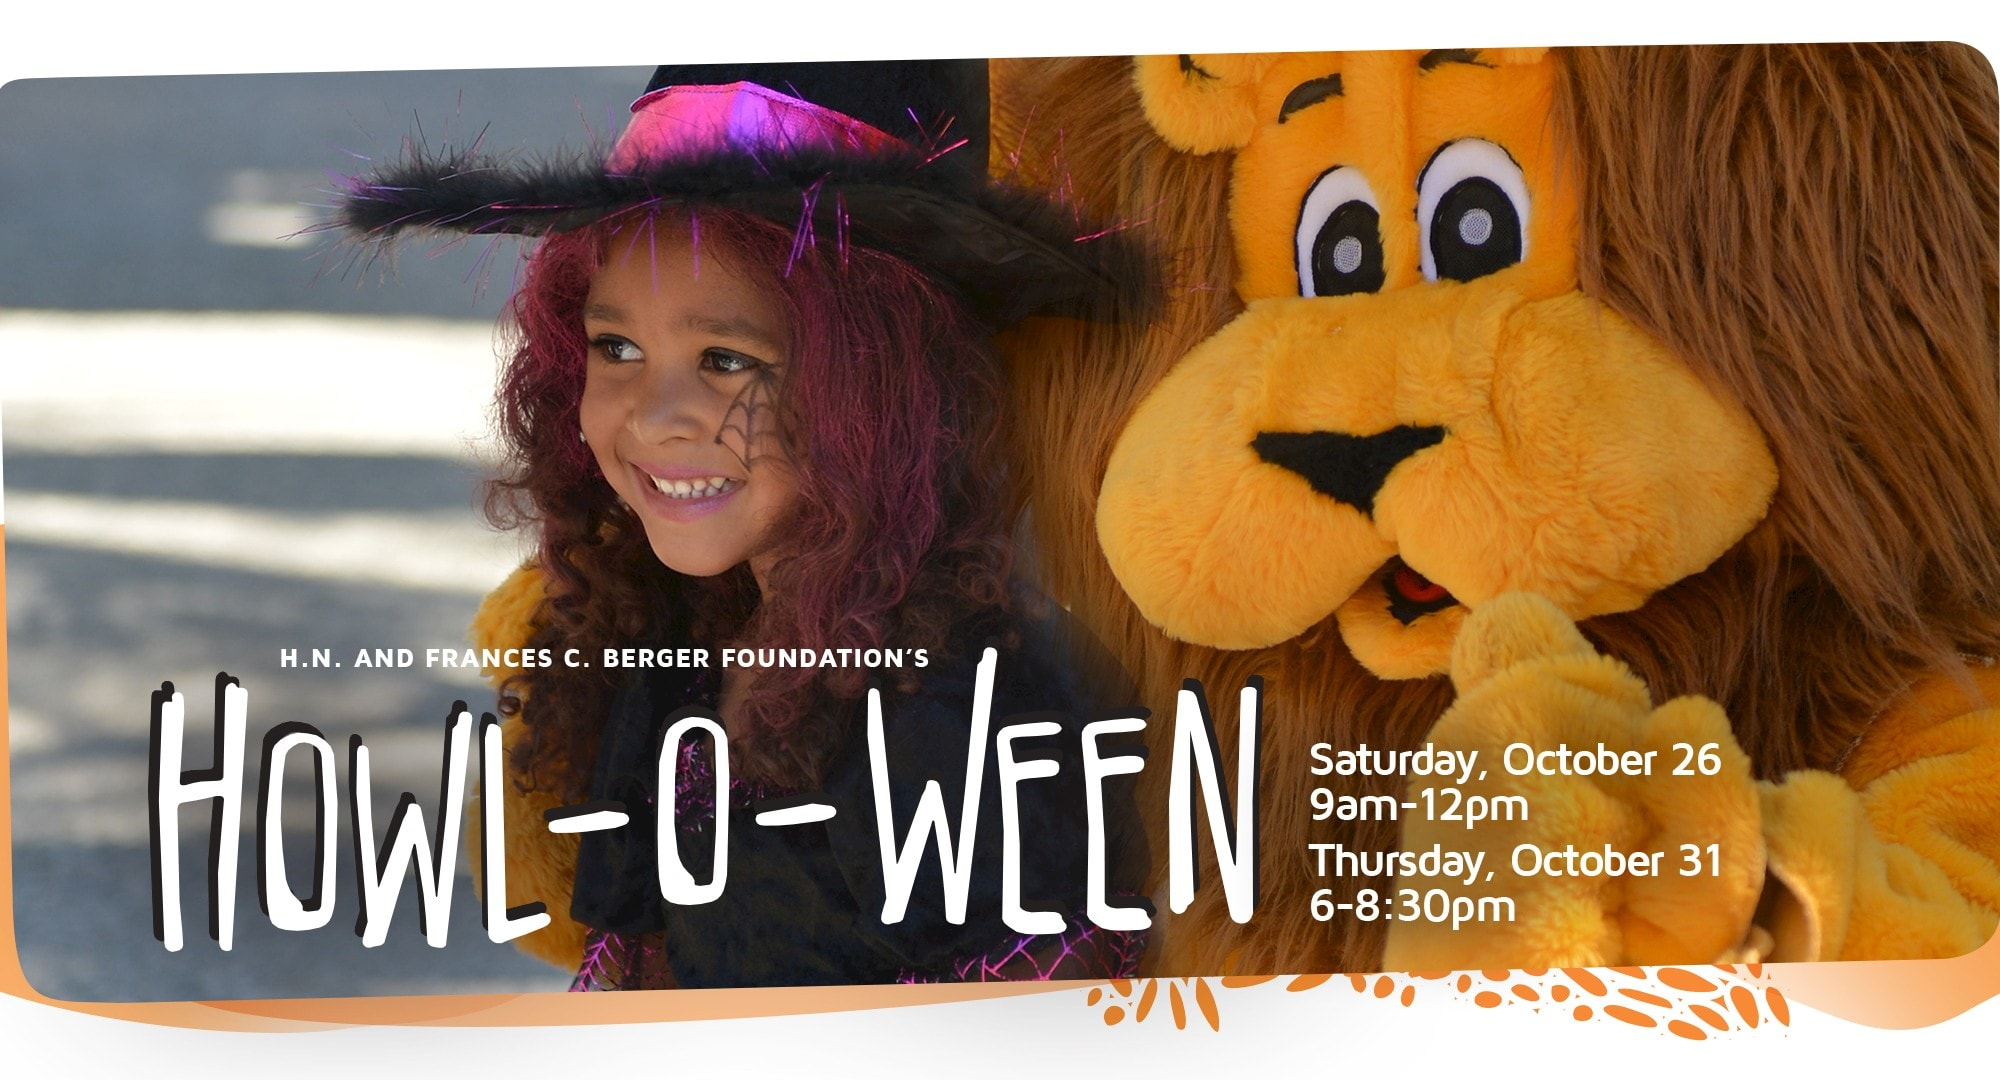 Come in your favorite costumes and enjoy over 20 trick-or-treat stations, arts and crafts, animal encounters and entertainment.